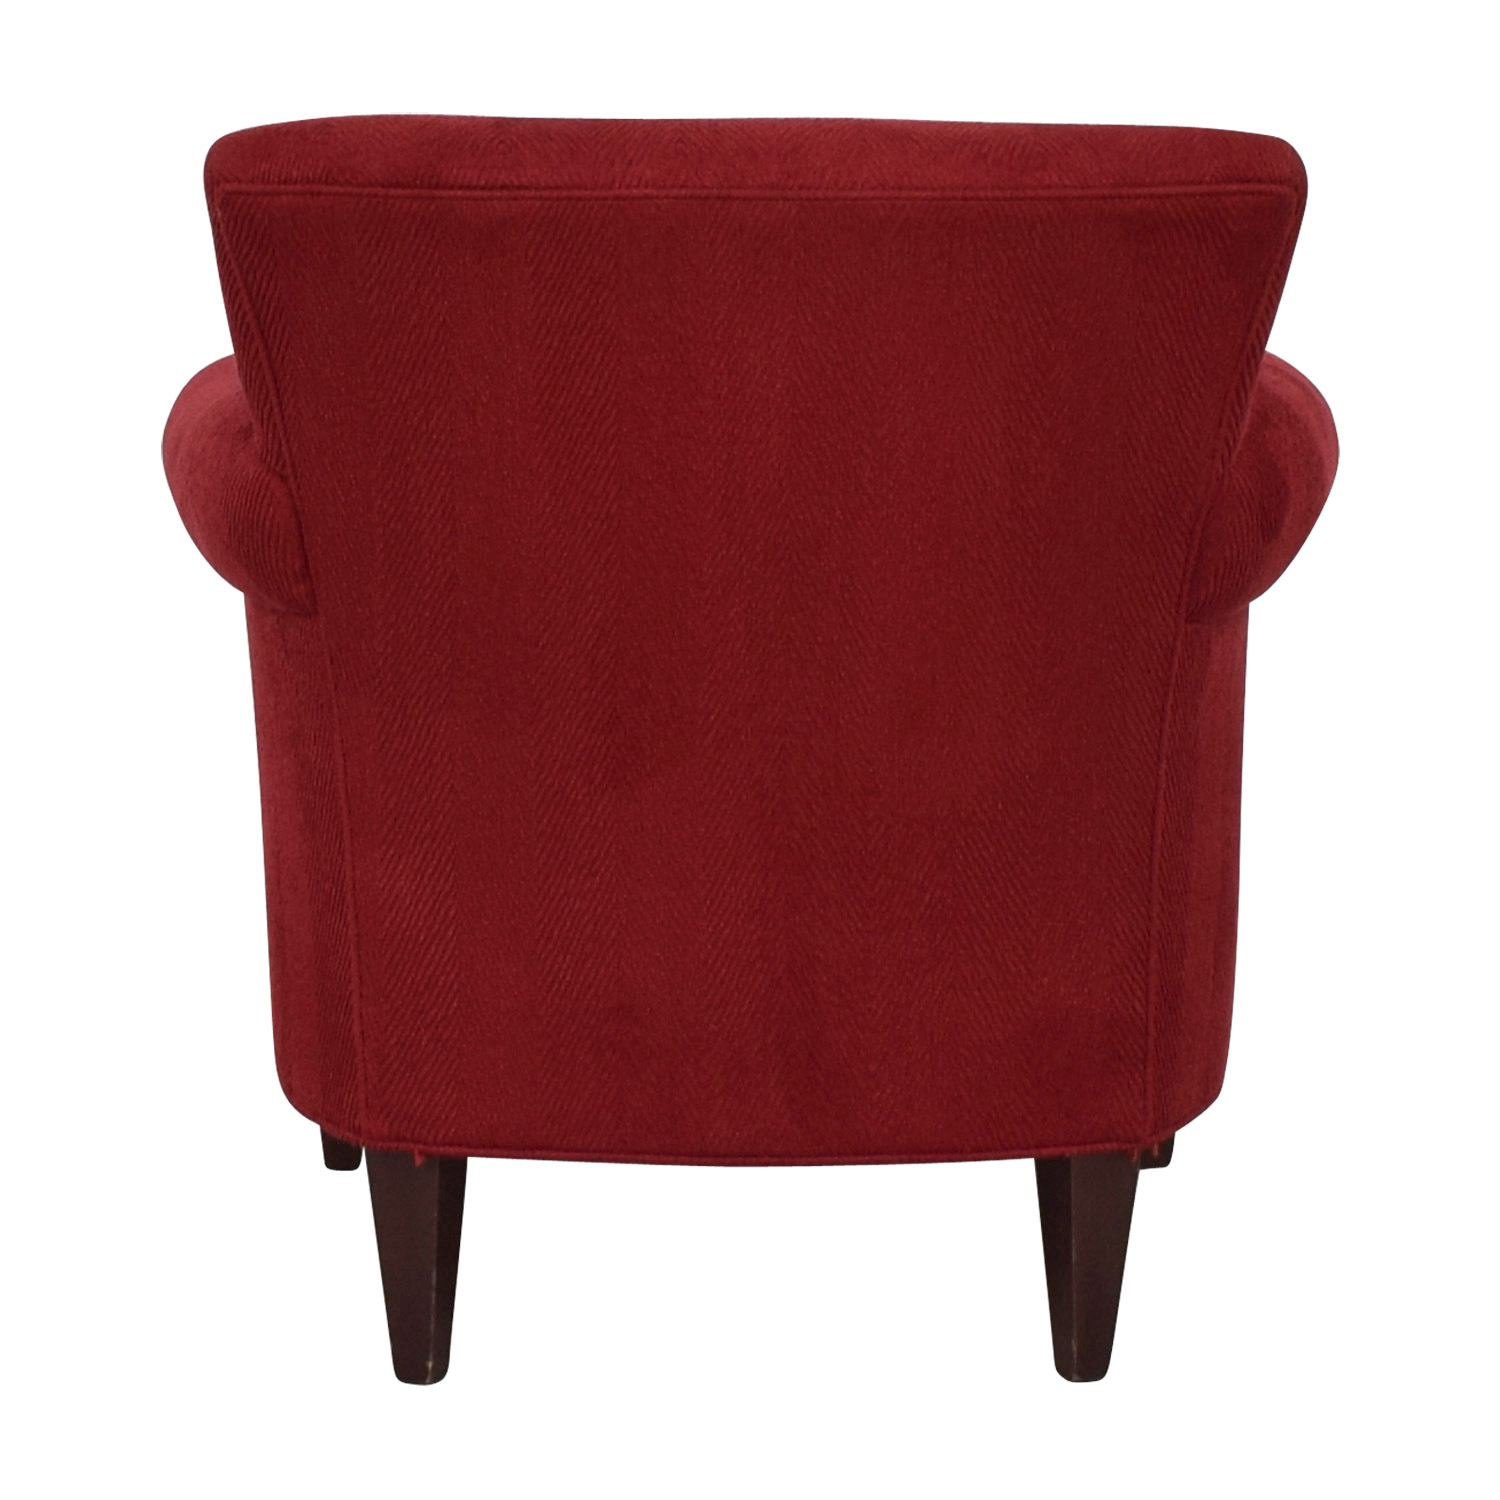 Crate & Barrel Crate & Barrel Red Roll Arm Accent Chair and Ottoman